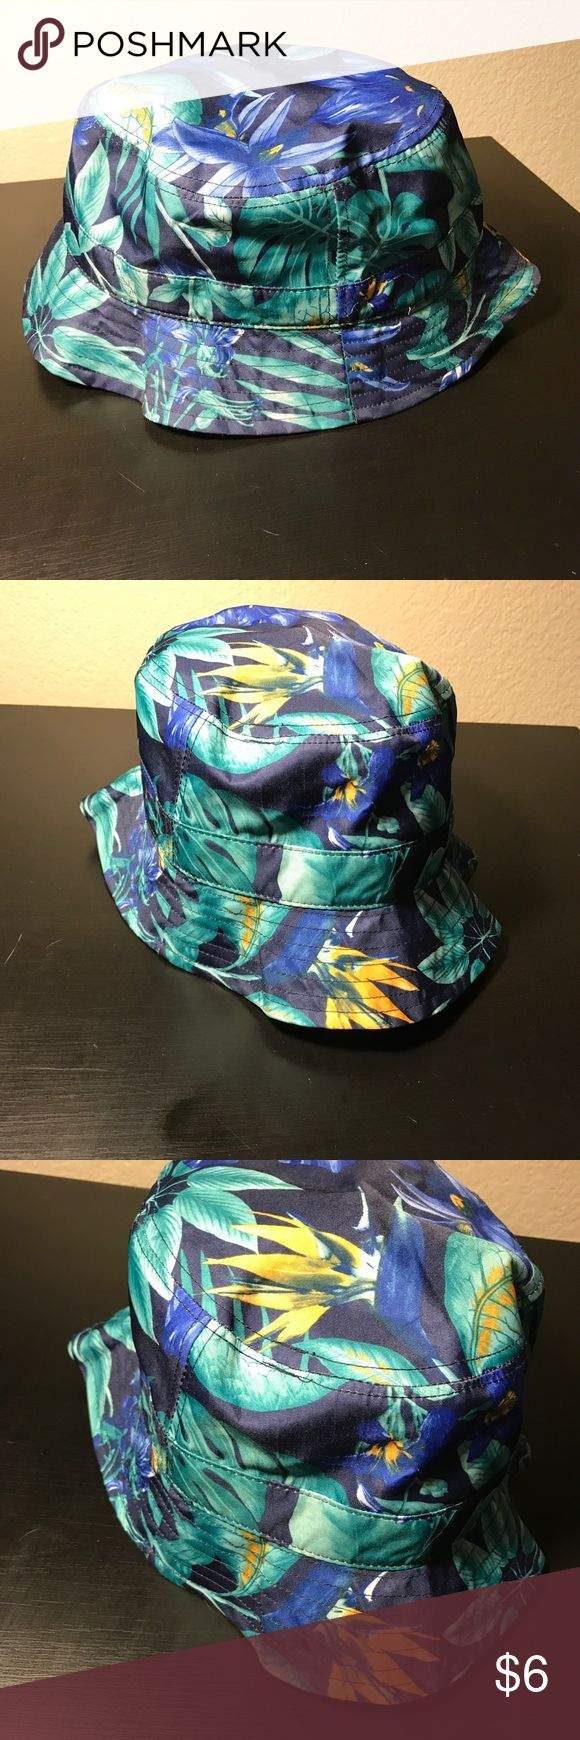 Floral Bucket Hat Floral bucket hat  Colors : Green , Blue , teal and Gold  Worn twice Accessories Hats